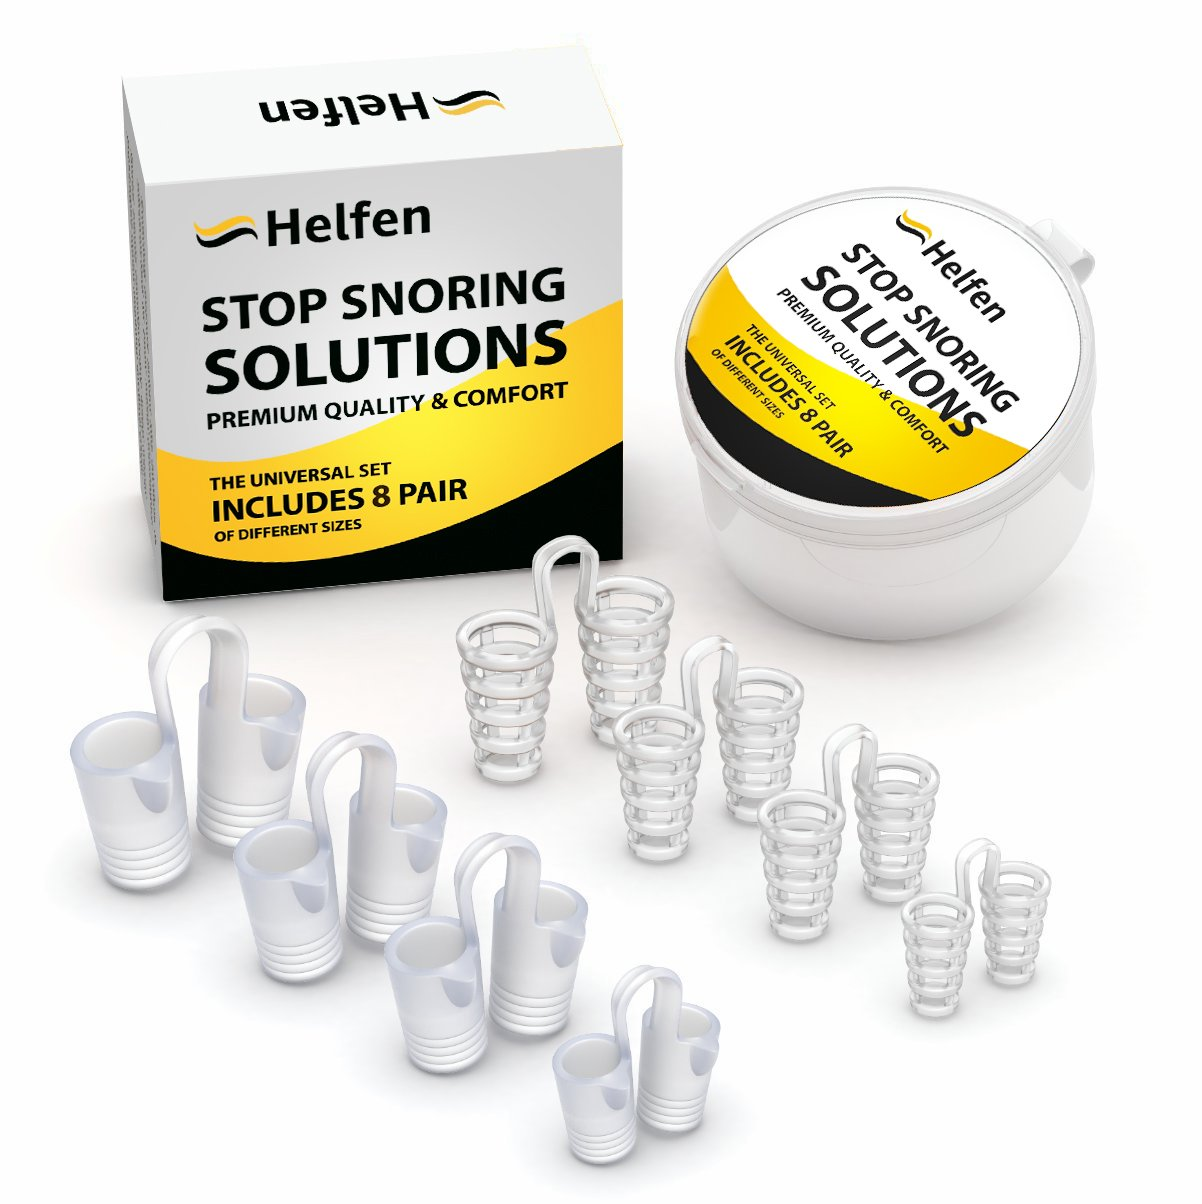 Anti Snoring Devices - Snoring Solution - Snore Stopper Set - Anti Snoring Solutions - 8 Anti Snoring Nose Vents - Anti Snoring Device- Snoring Stopper Nasal Dilators (Clear)